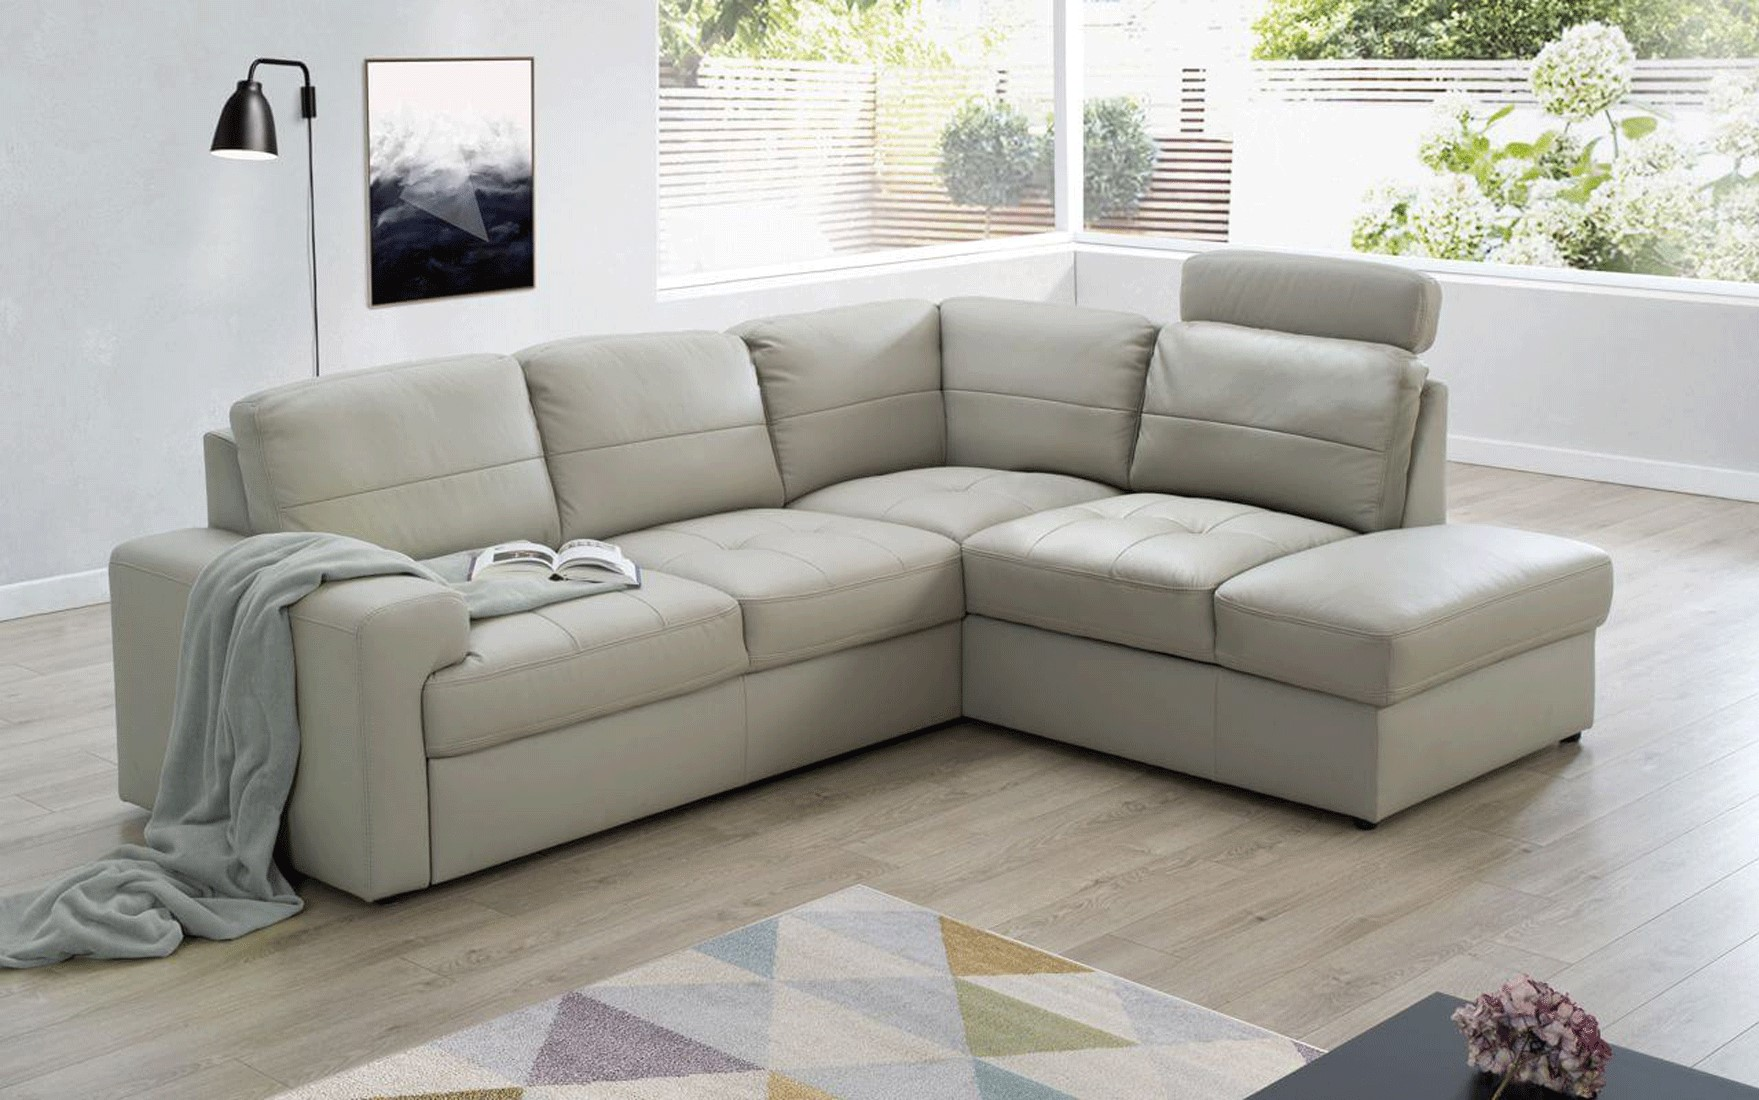 Living Room Furniture Sectionals Ella Sectional Right w/Bed & Storage